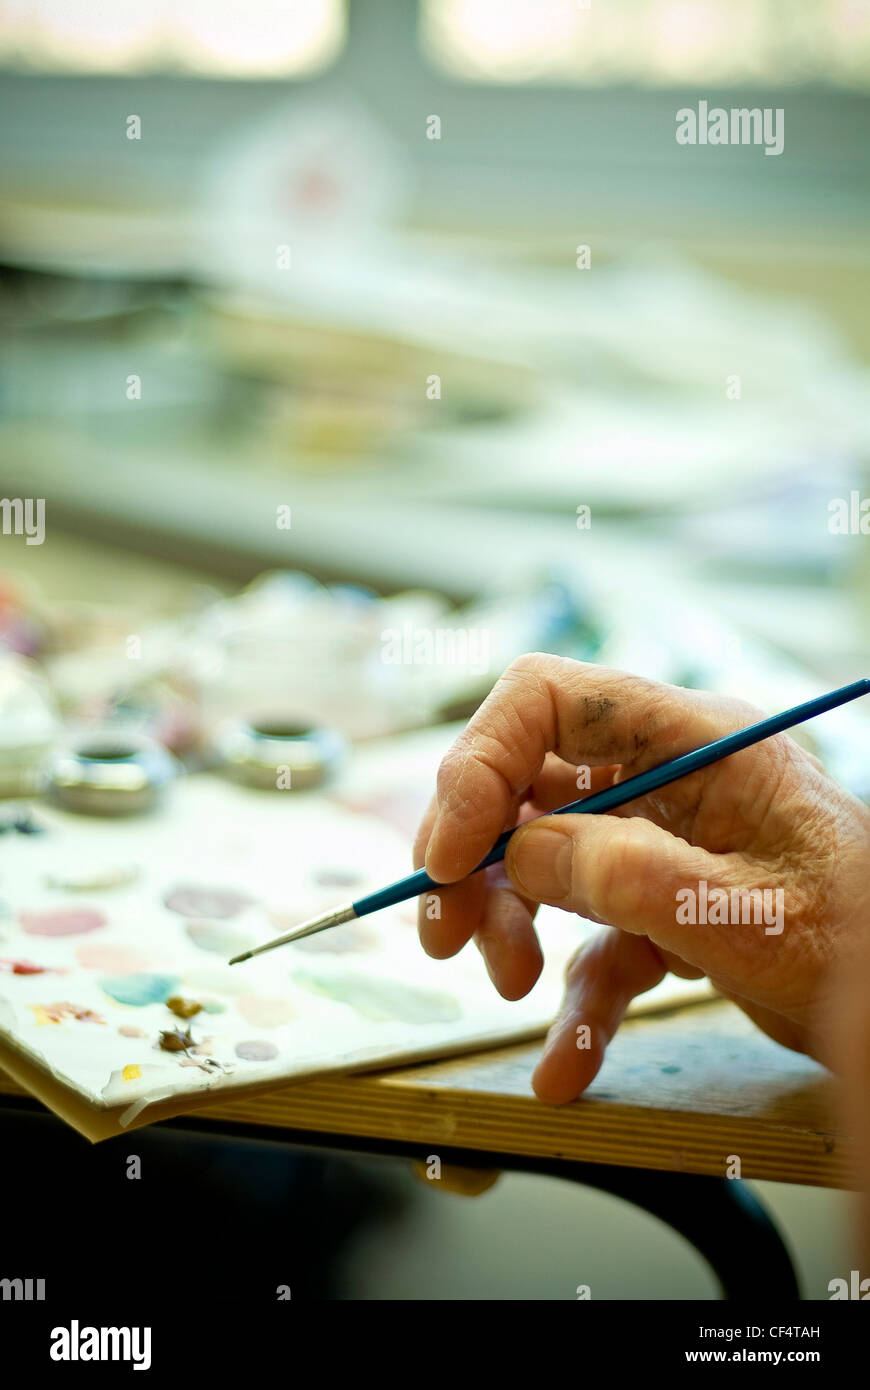 Artist applying brush strokes on an oil painting - Stock Image